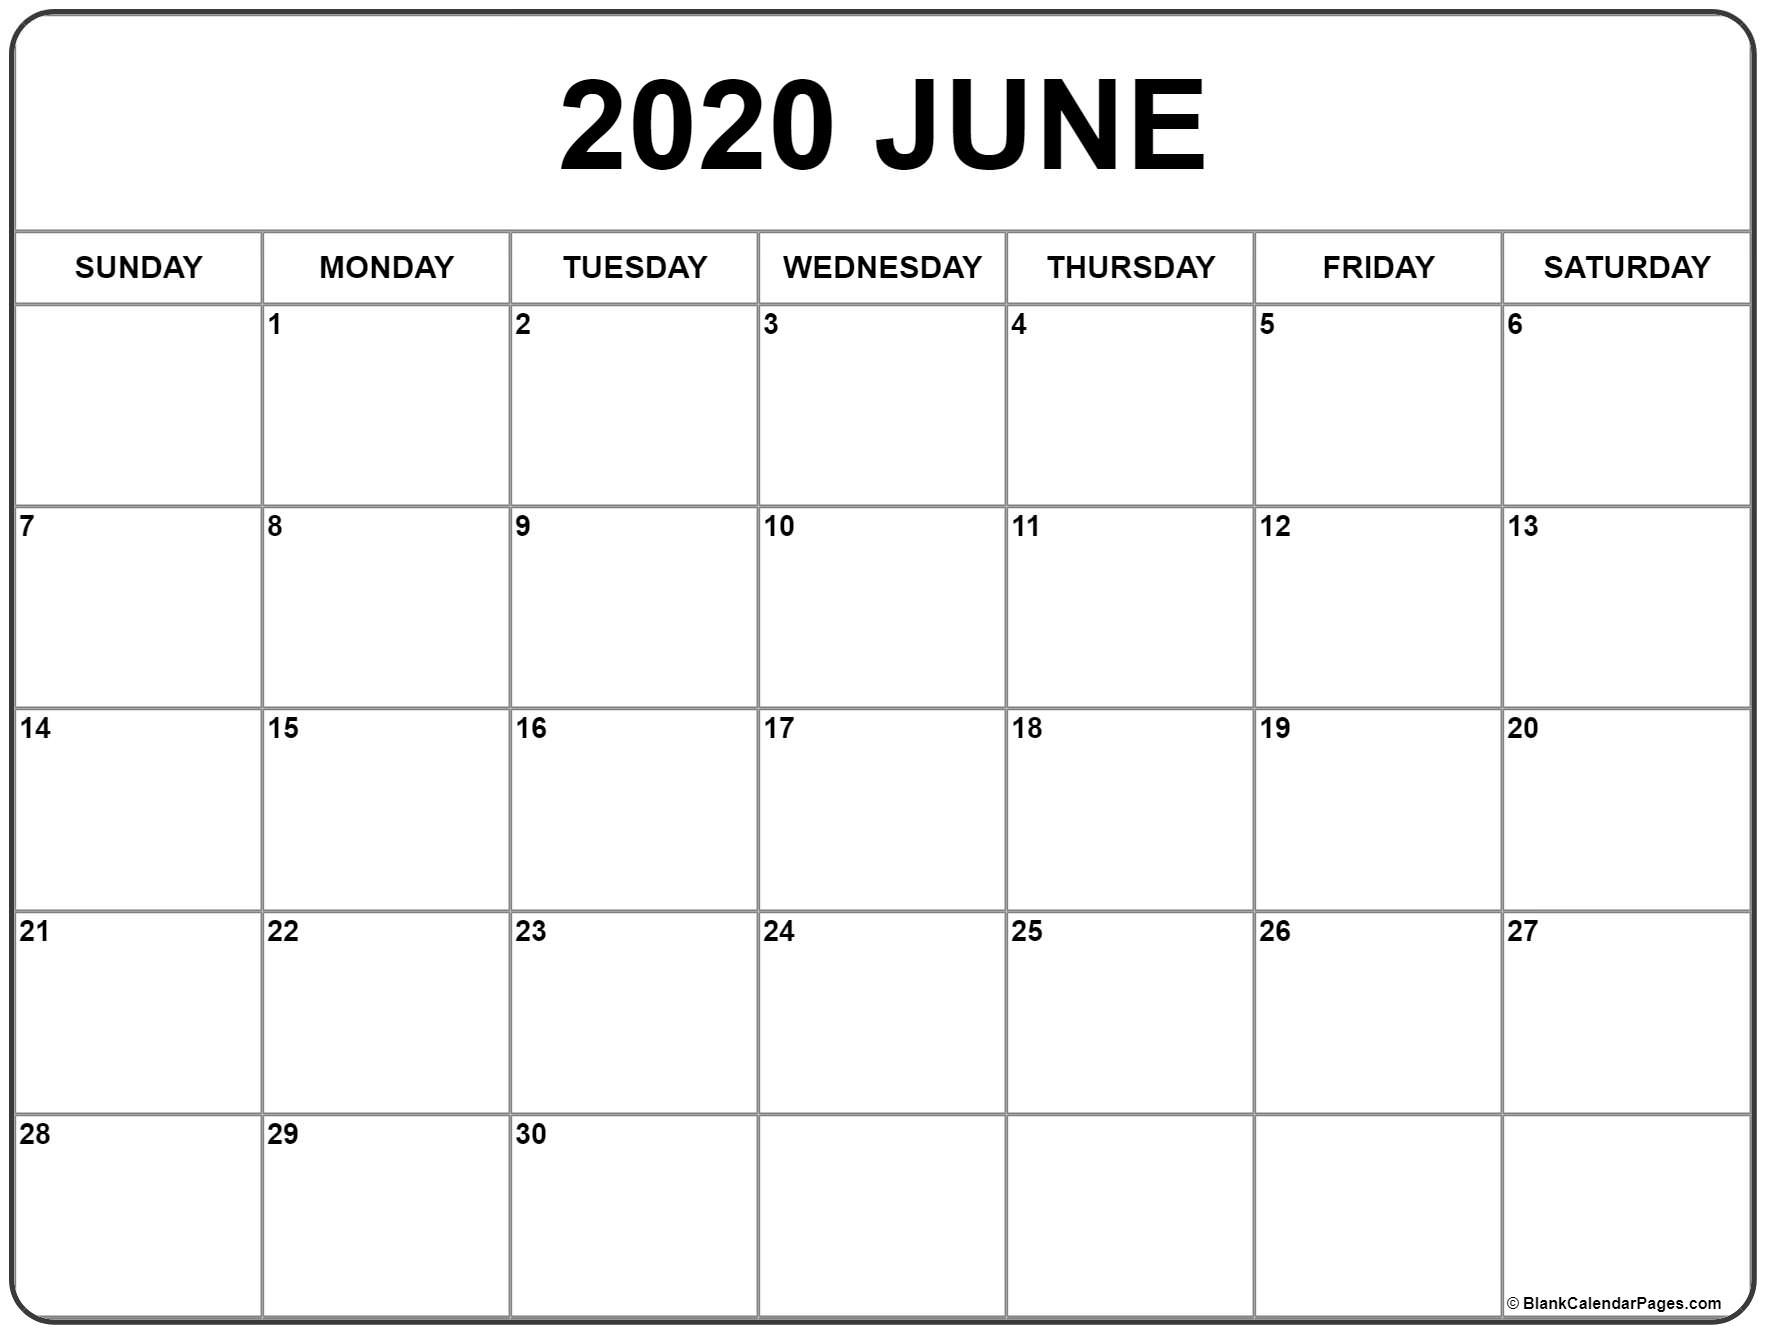 June 2020 Calendar | Free Printable Monthly Calendars  Fill In Calendar 2020 Printable